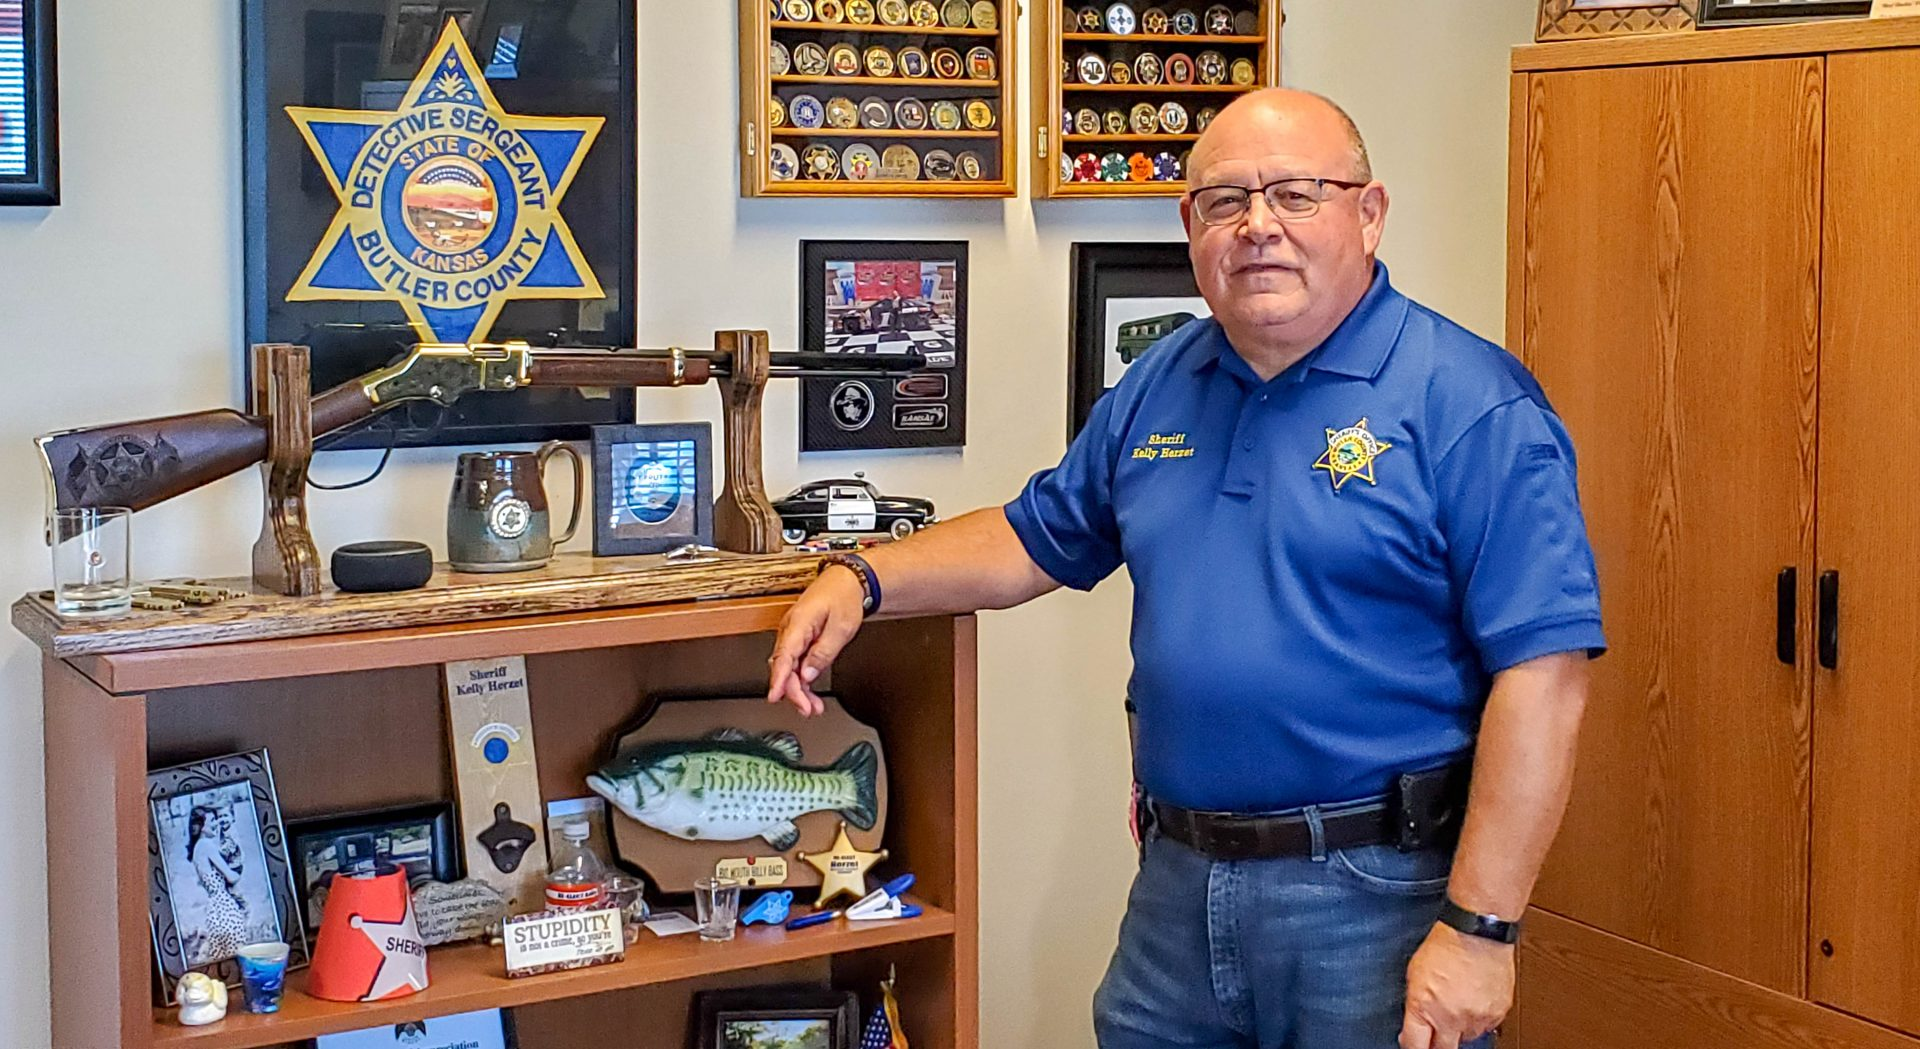 Sheriff Kelly Herzet stands next to a shelf in his office.